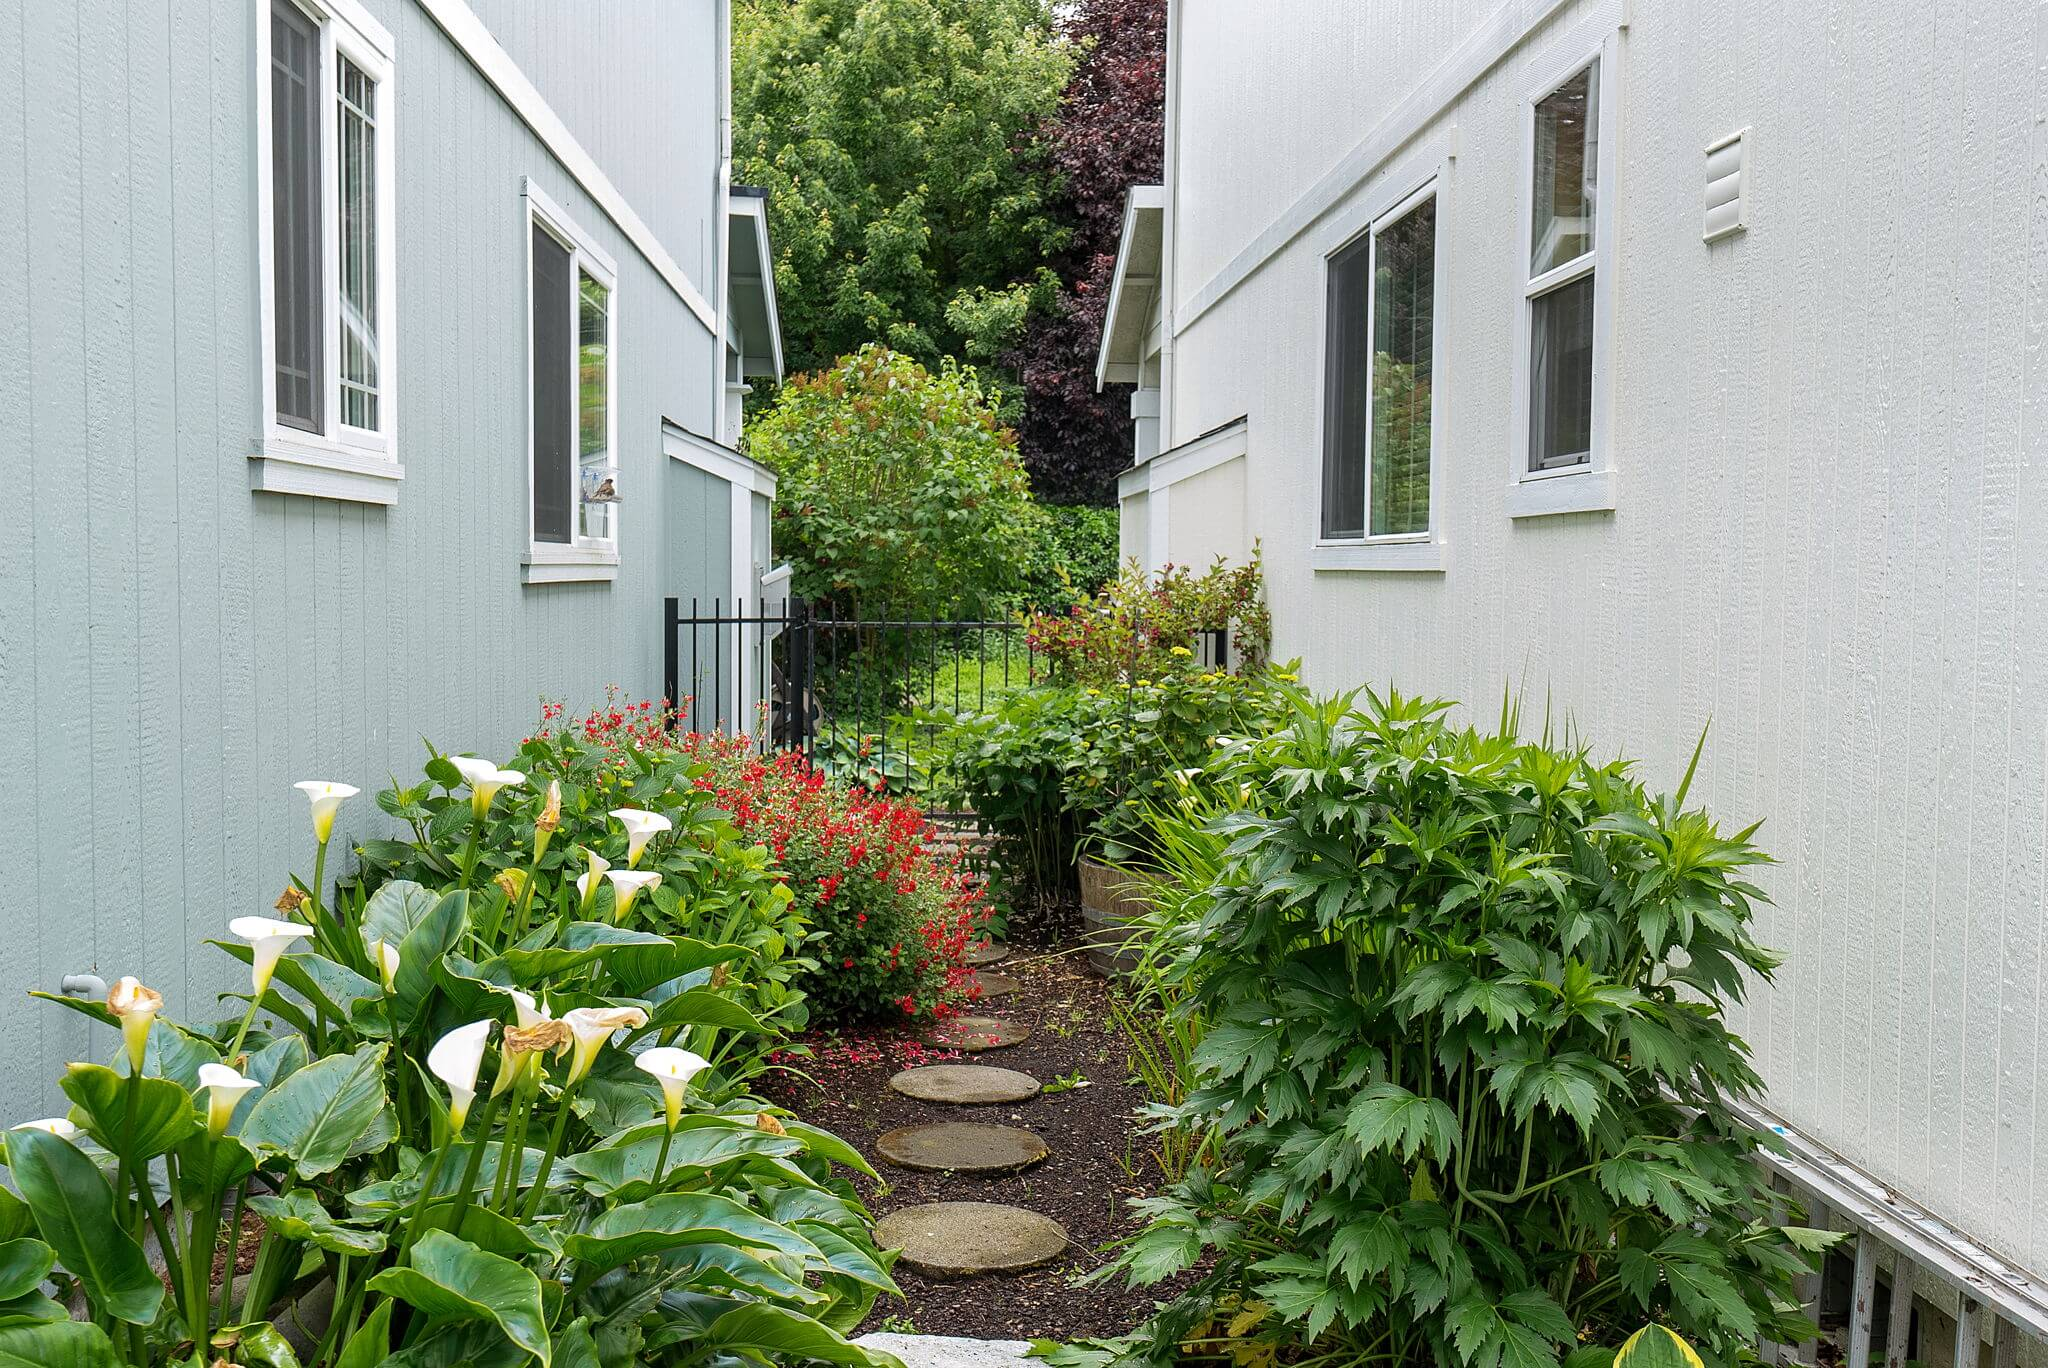 Shared garden space on the south side of the house